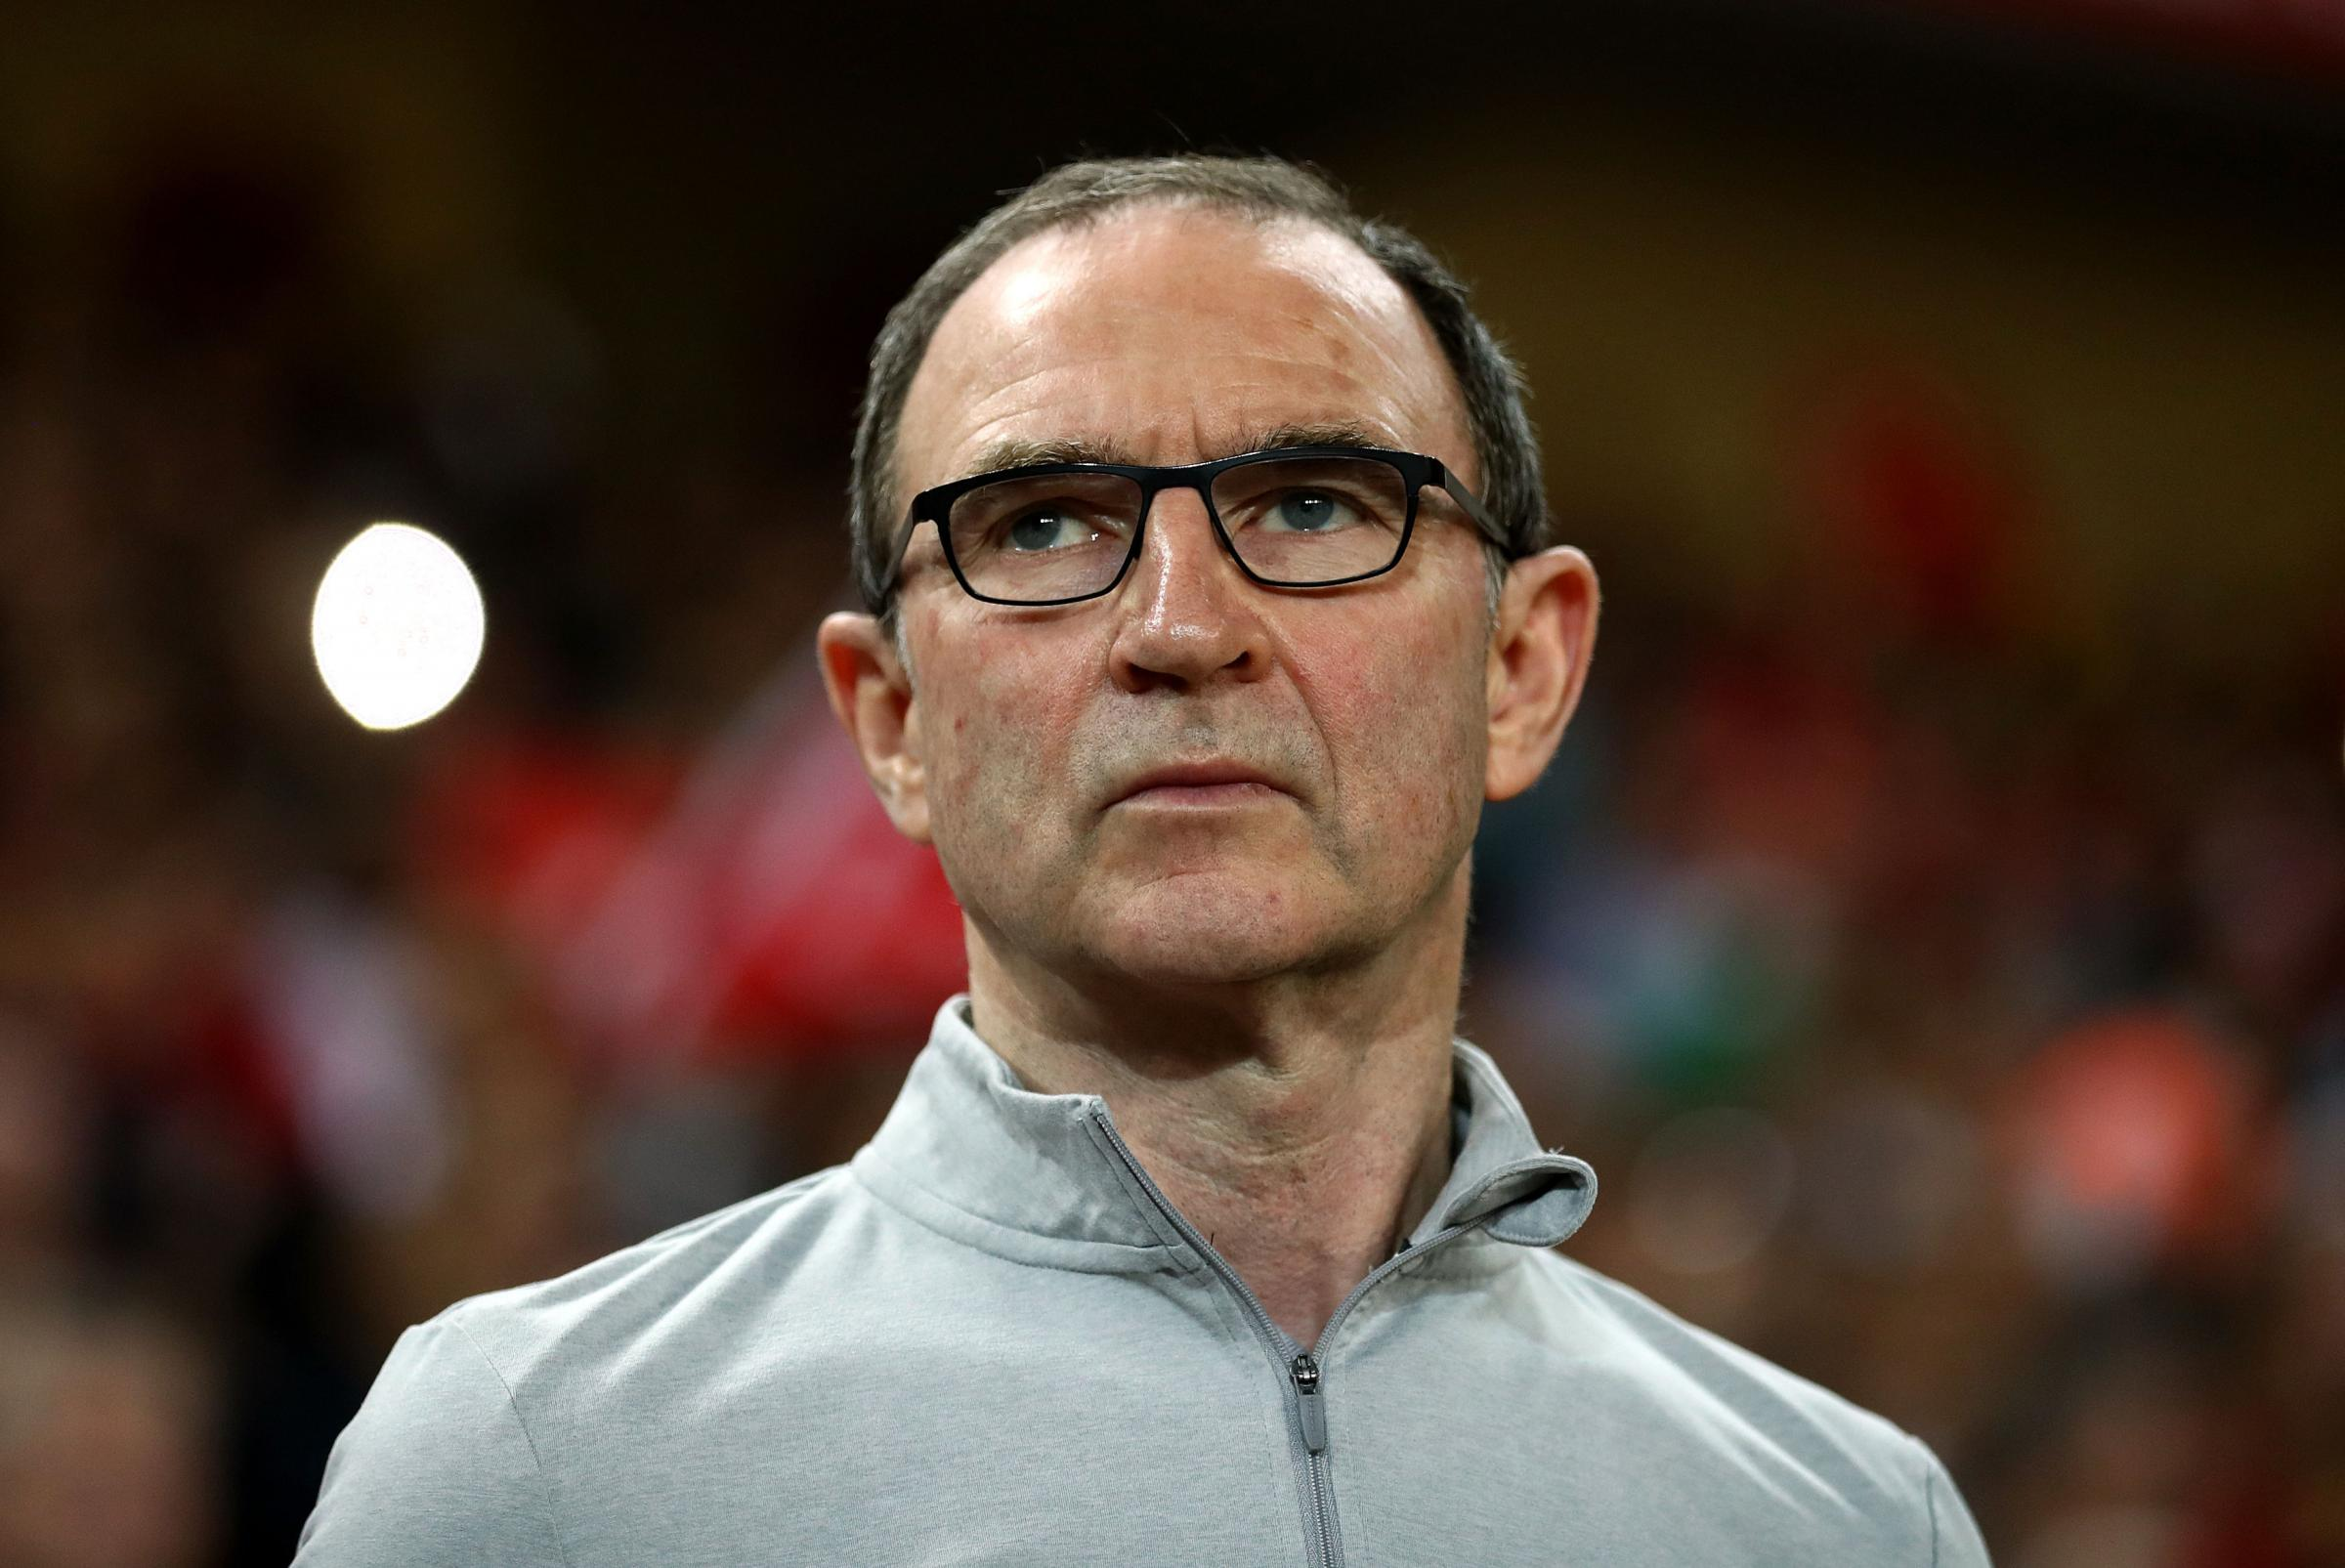 Republic of Ireland manager Martin O'Neill during the international friendly match at the Antalya Stadium. PRESS ASSOCIATION Photo. Picture date: Friday March 23, 2018. See PA story SOCCER Turkey. Photo credit should read: Tim Goode/PA W